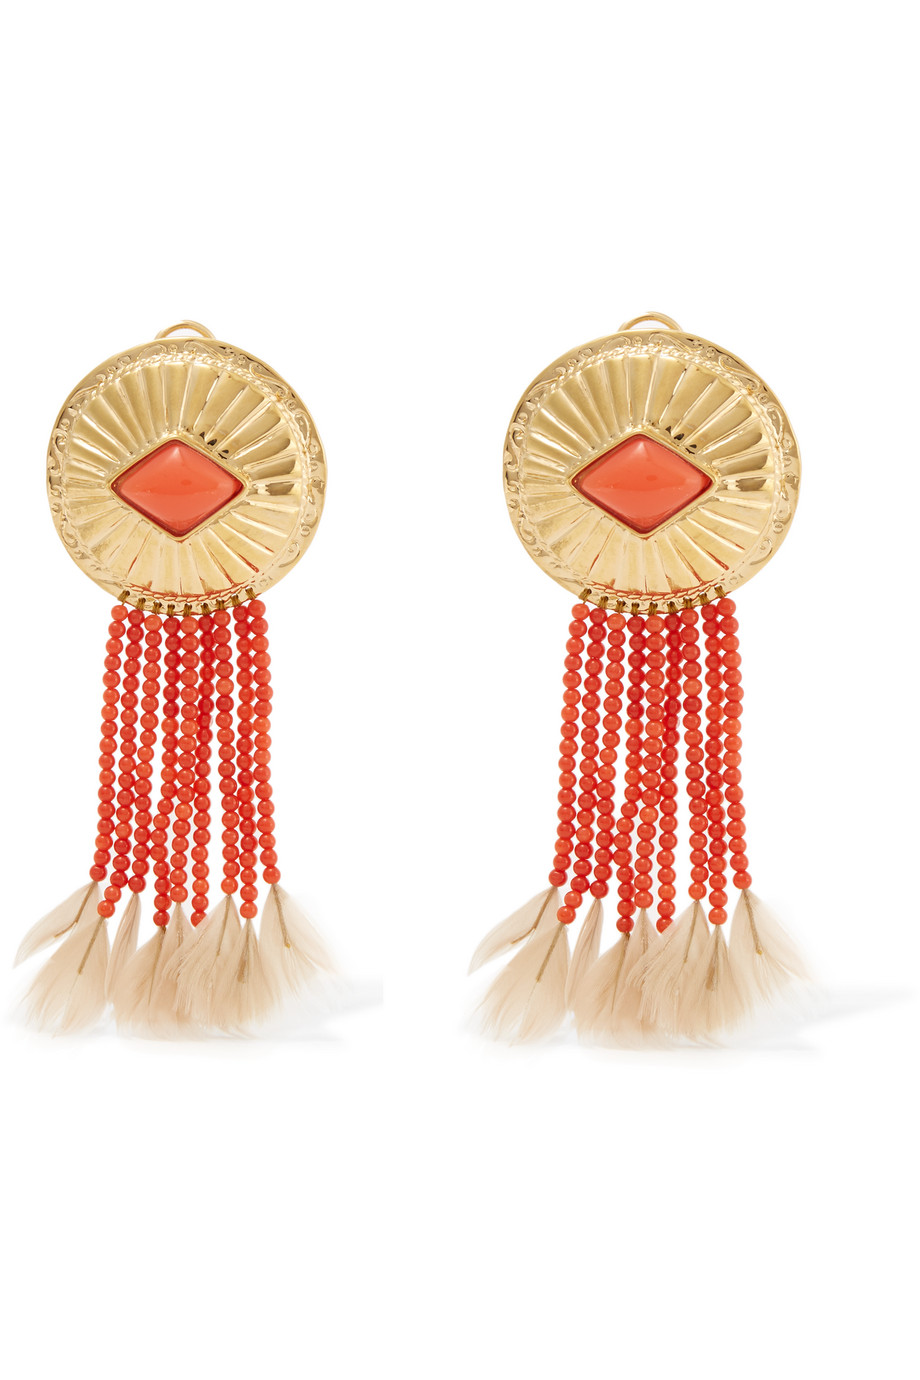 Gold-Plated, Coral and Feather Clip Earrings, Aurélie Bidermann, Women's